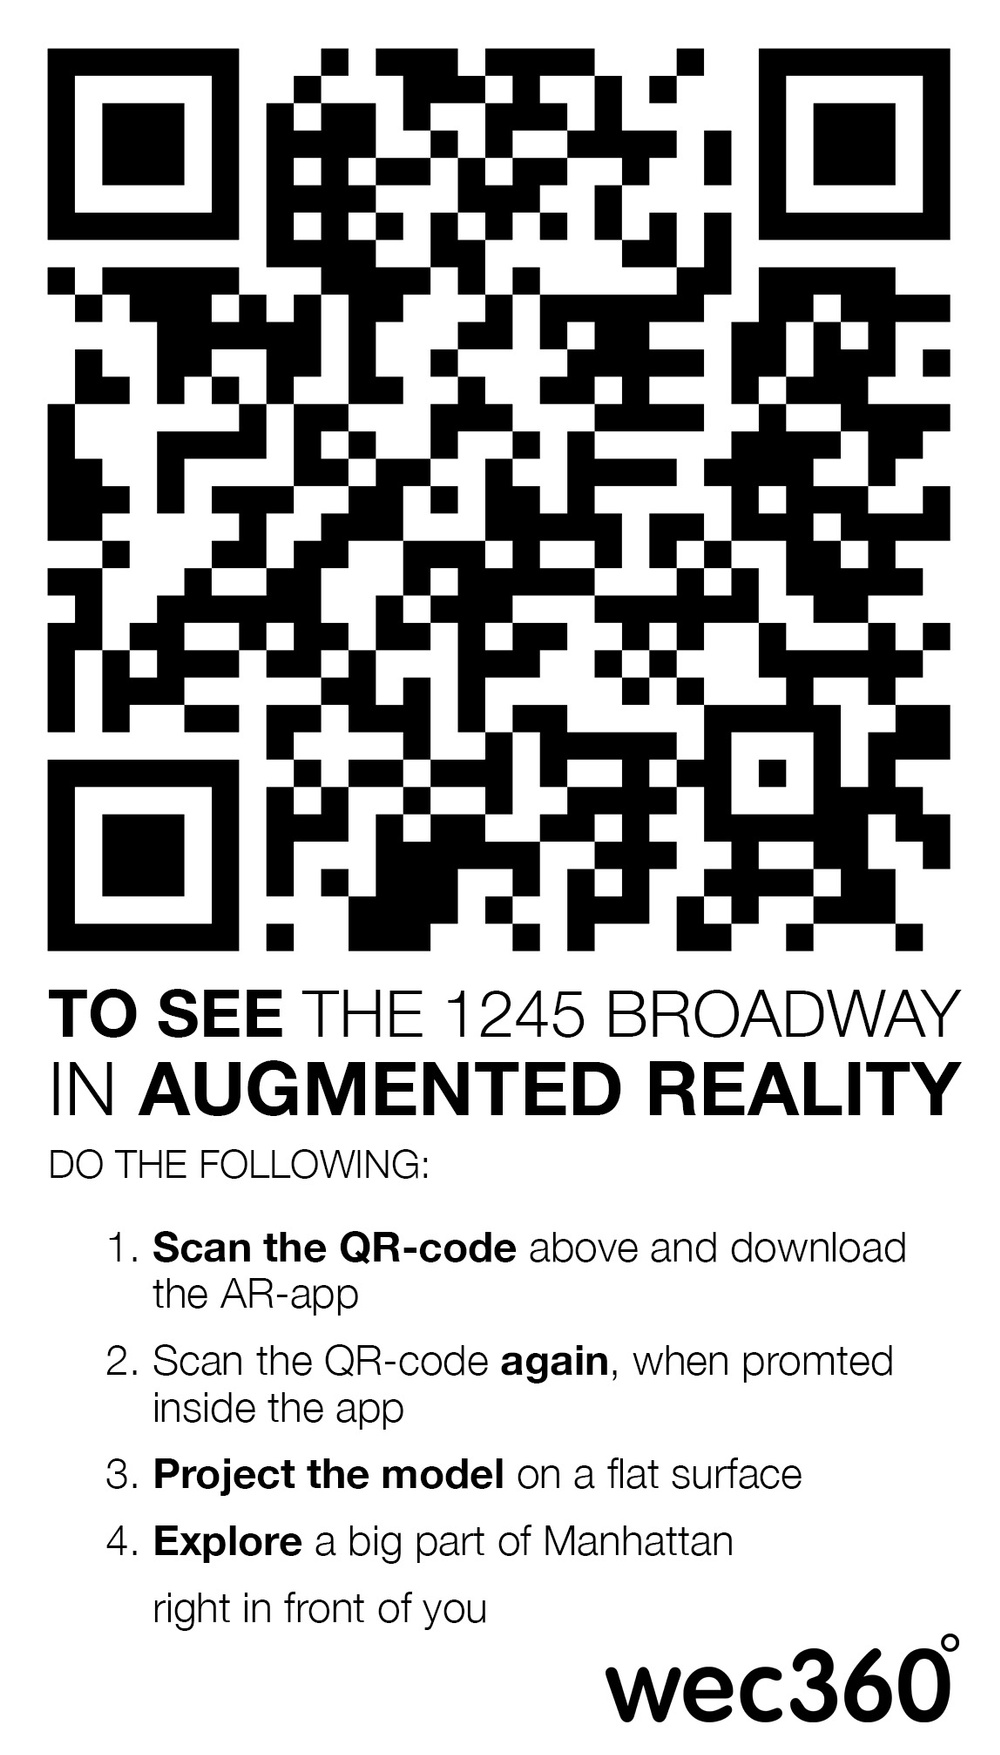 Scan the QR-code using your tablet or phone, and get to explore a major part of Manhattan using wec360°:s AR.